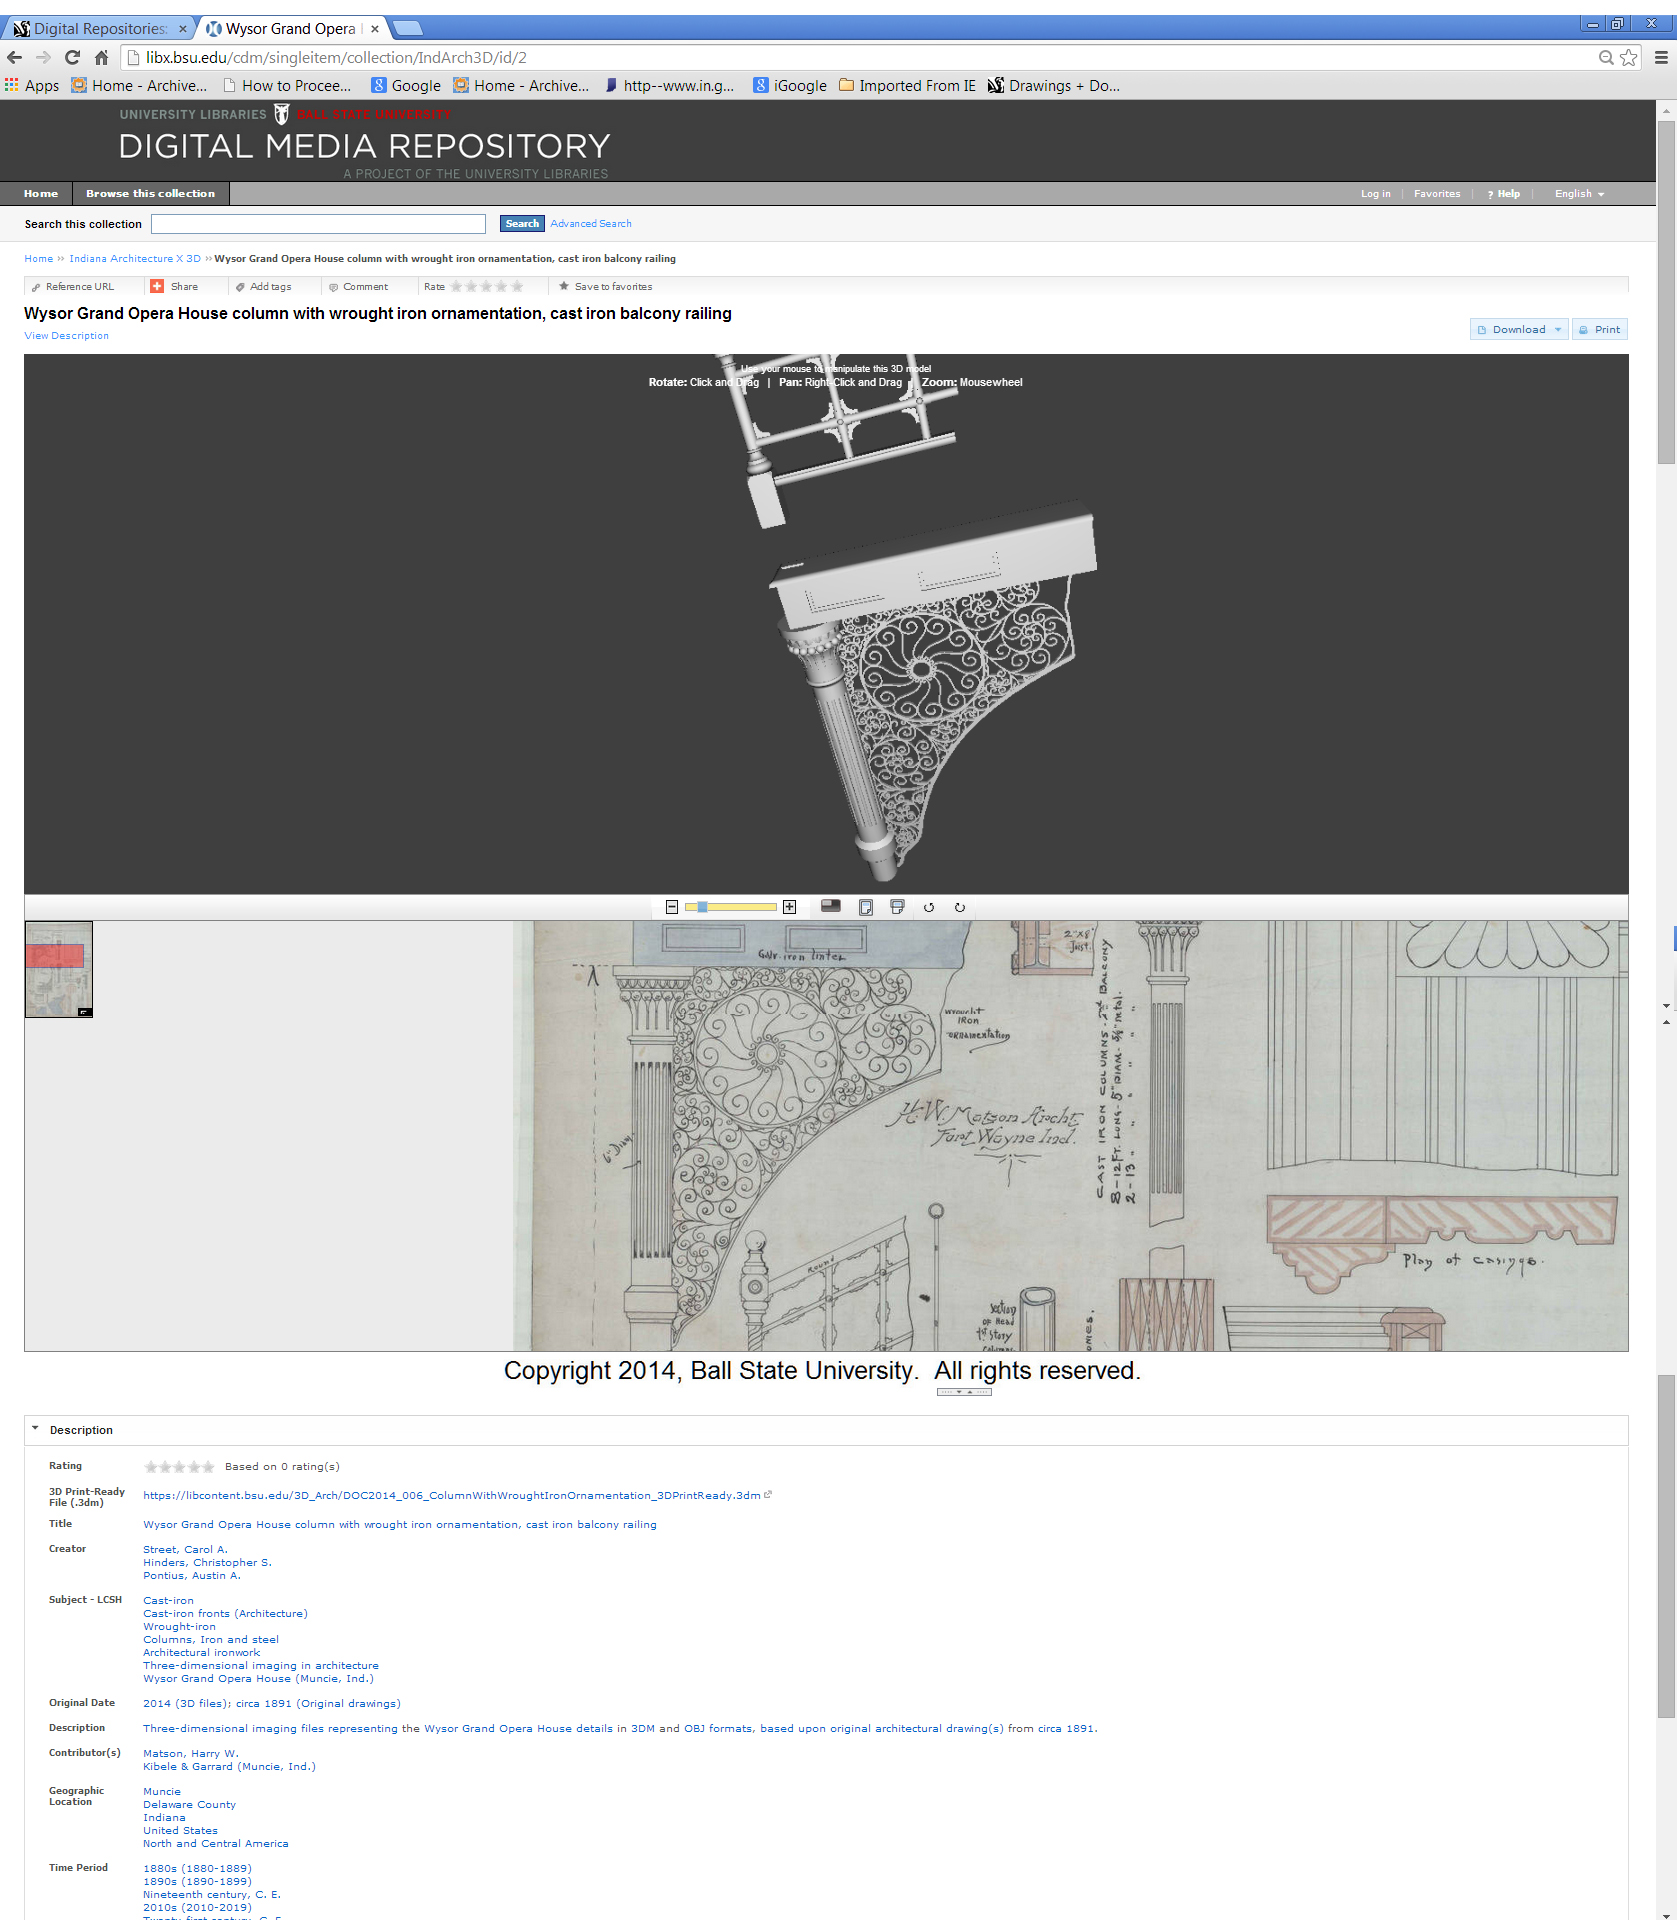 Digital Media Repository screenshot for column with wrought iron ornamentation and cast iron balcony railing, 2014. Indiana Architecture X 3D, Drawings + Documents Archive, Ball State University Libraries.